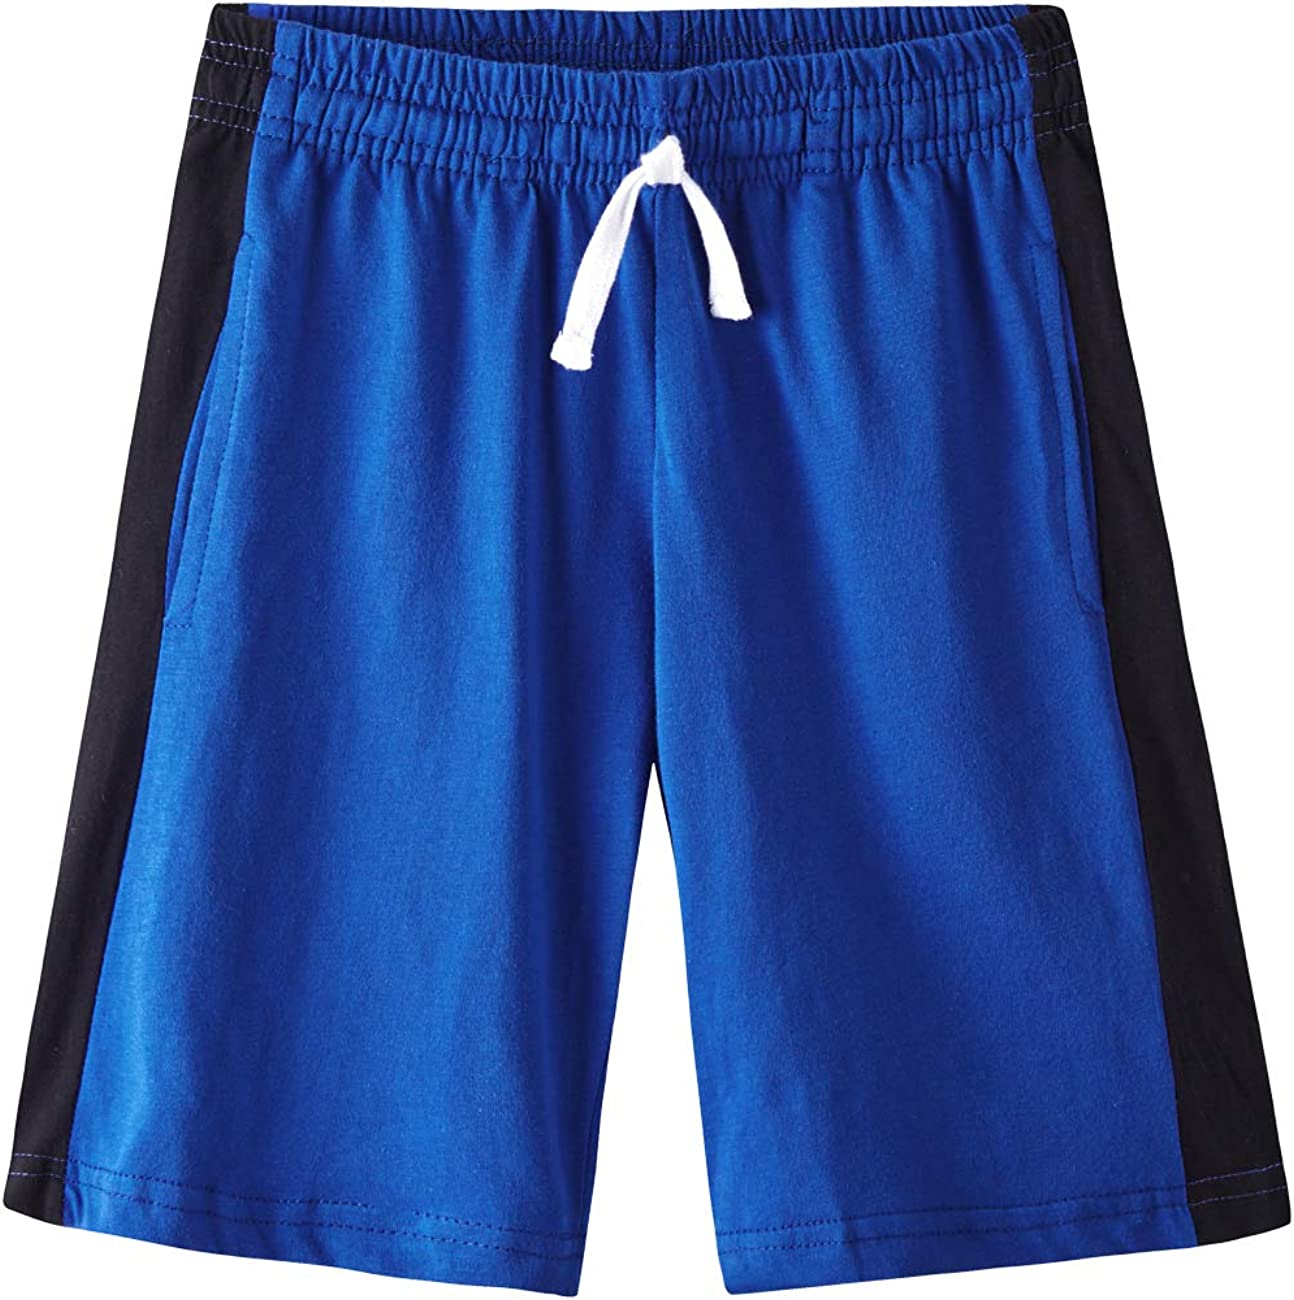 Spring/&Gege Boys Cotton Knit Jersey Pull-On Shorts